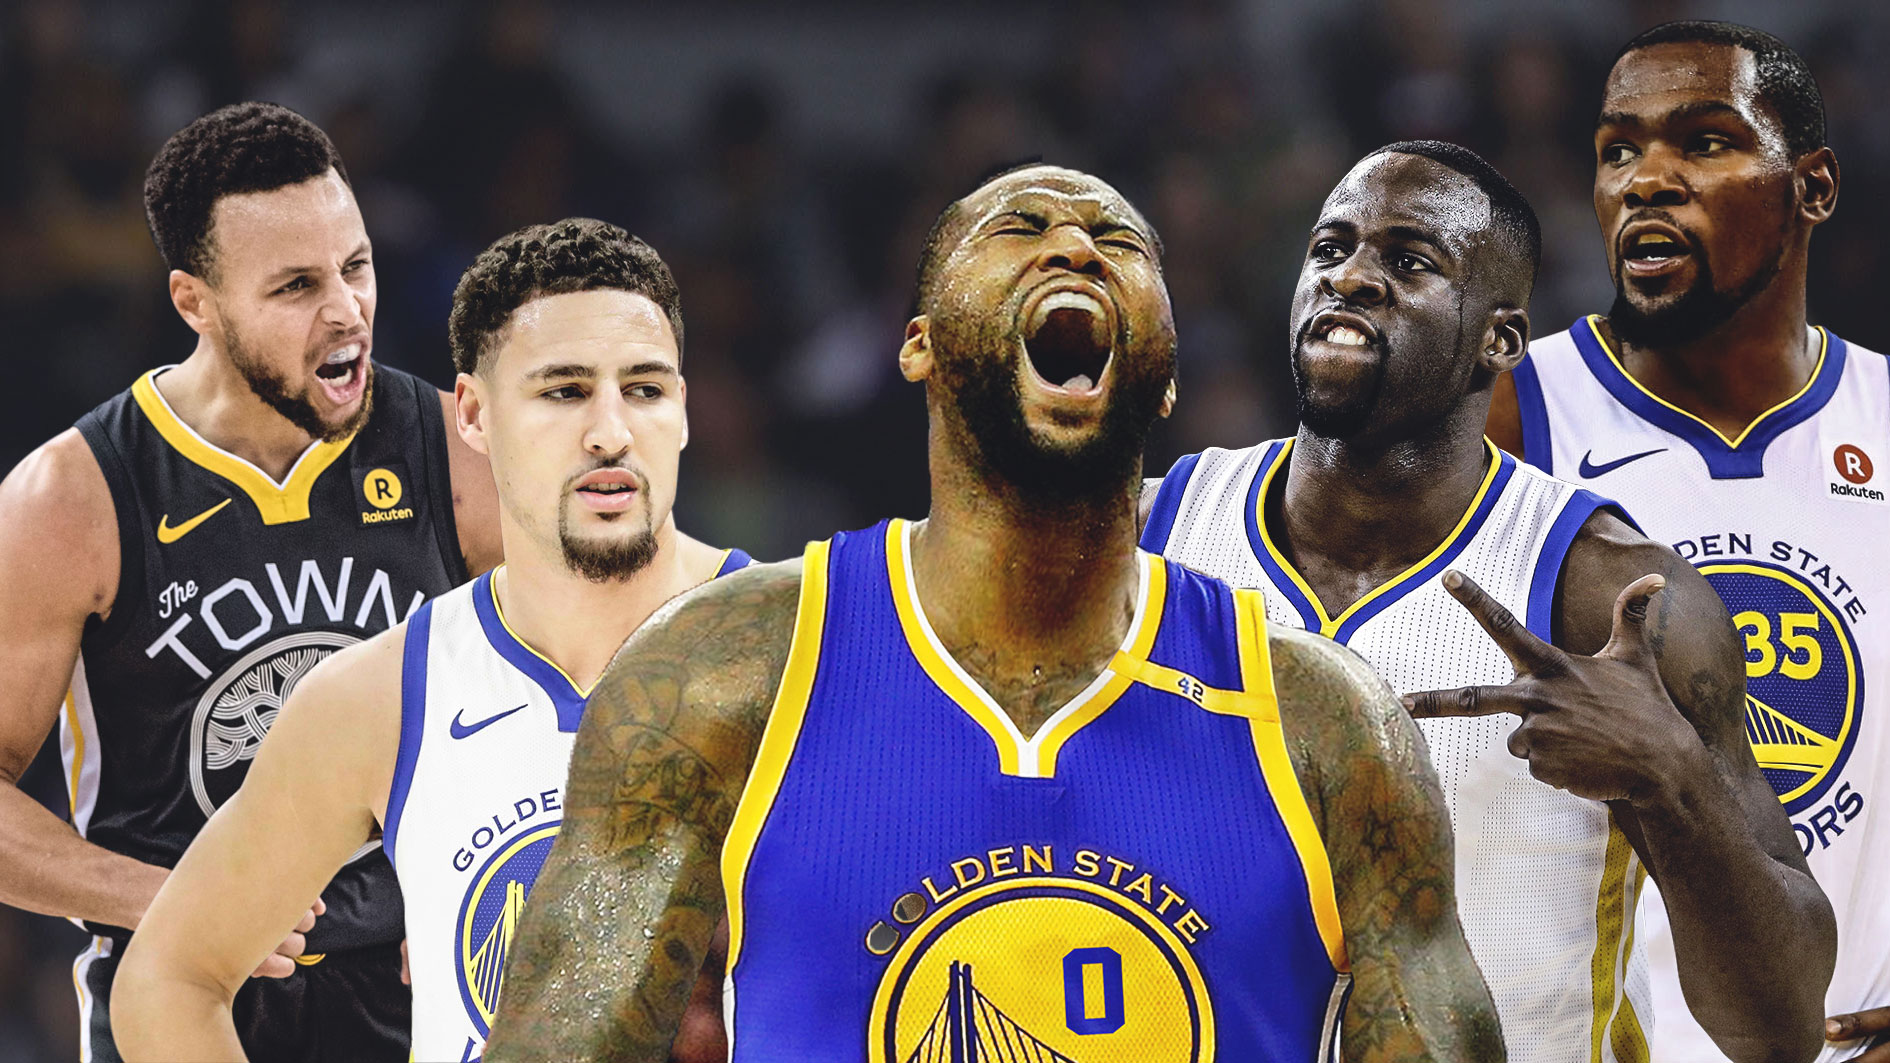 Klay Thompson is now a Warrior